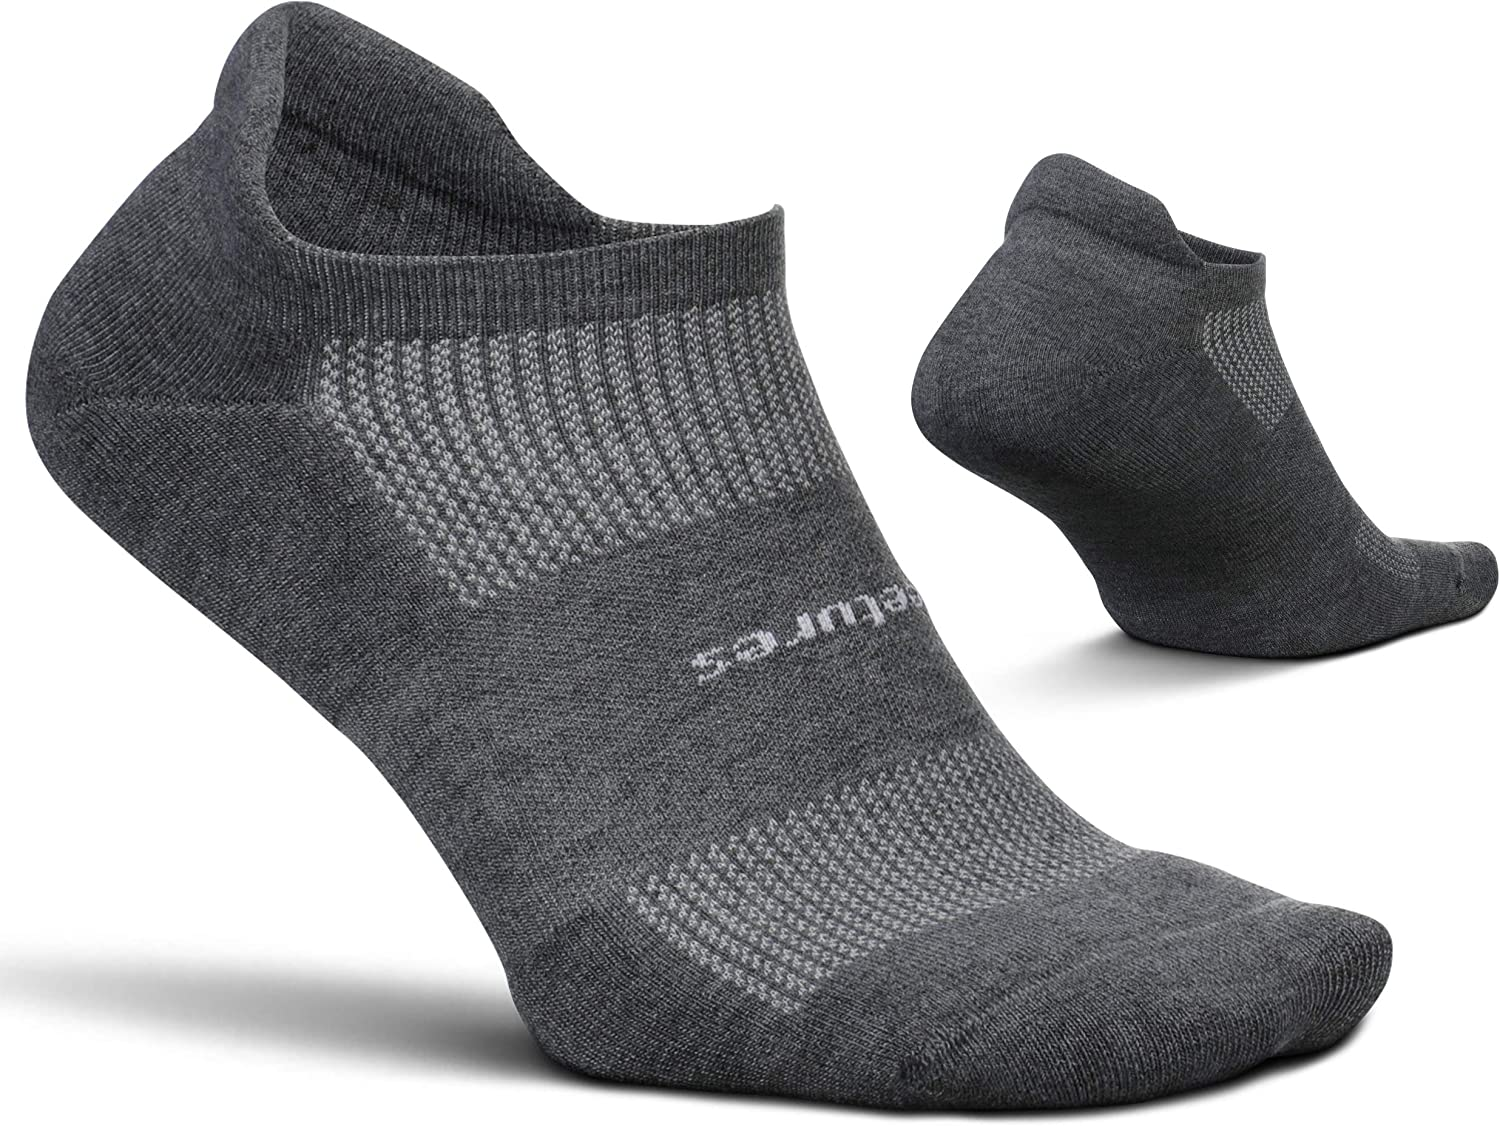 Feetures Unisex High Performance Cushion No Show Tab Sock (Small, Heather Gray)